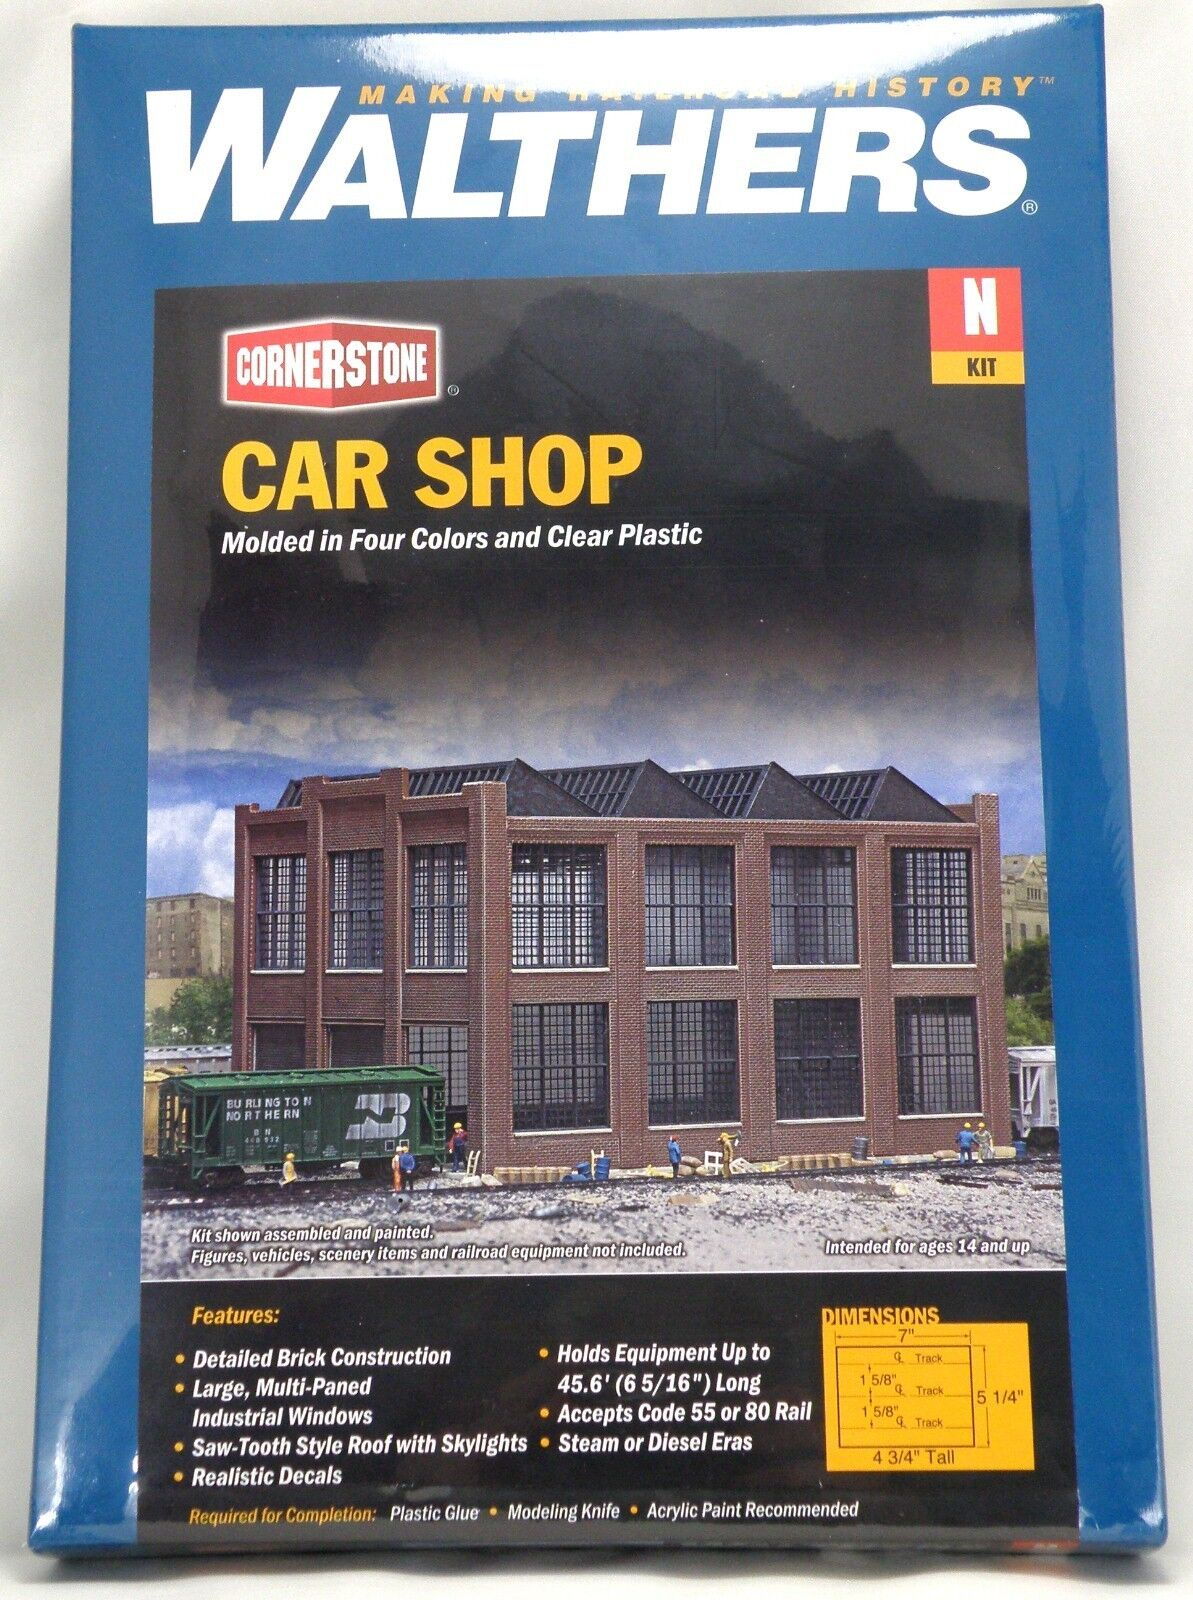 N Scale Car Shop Structure Kit - Walthers 523afbvry52123-N